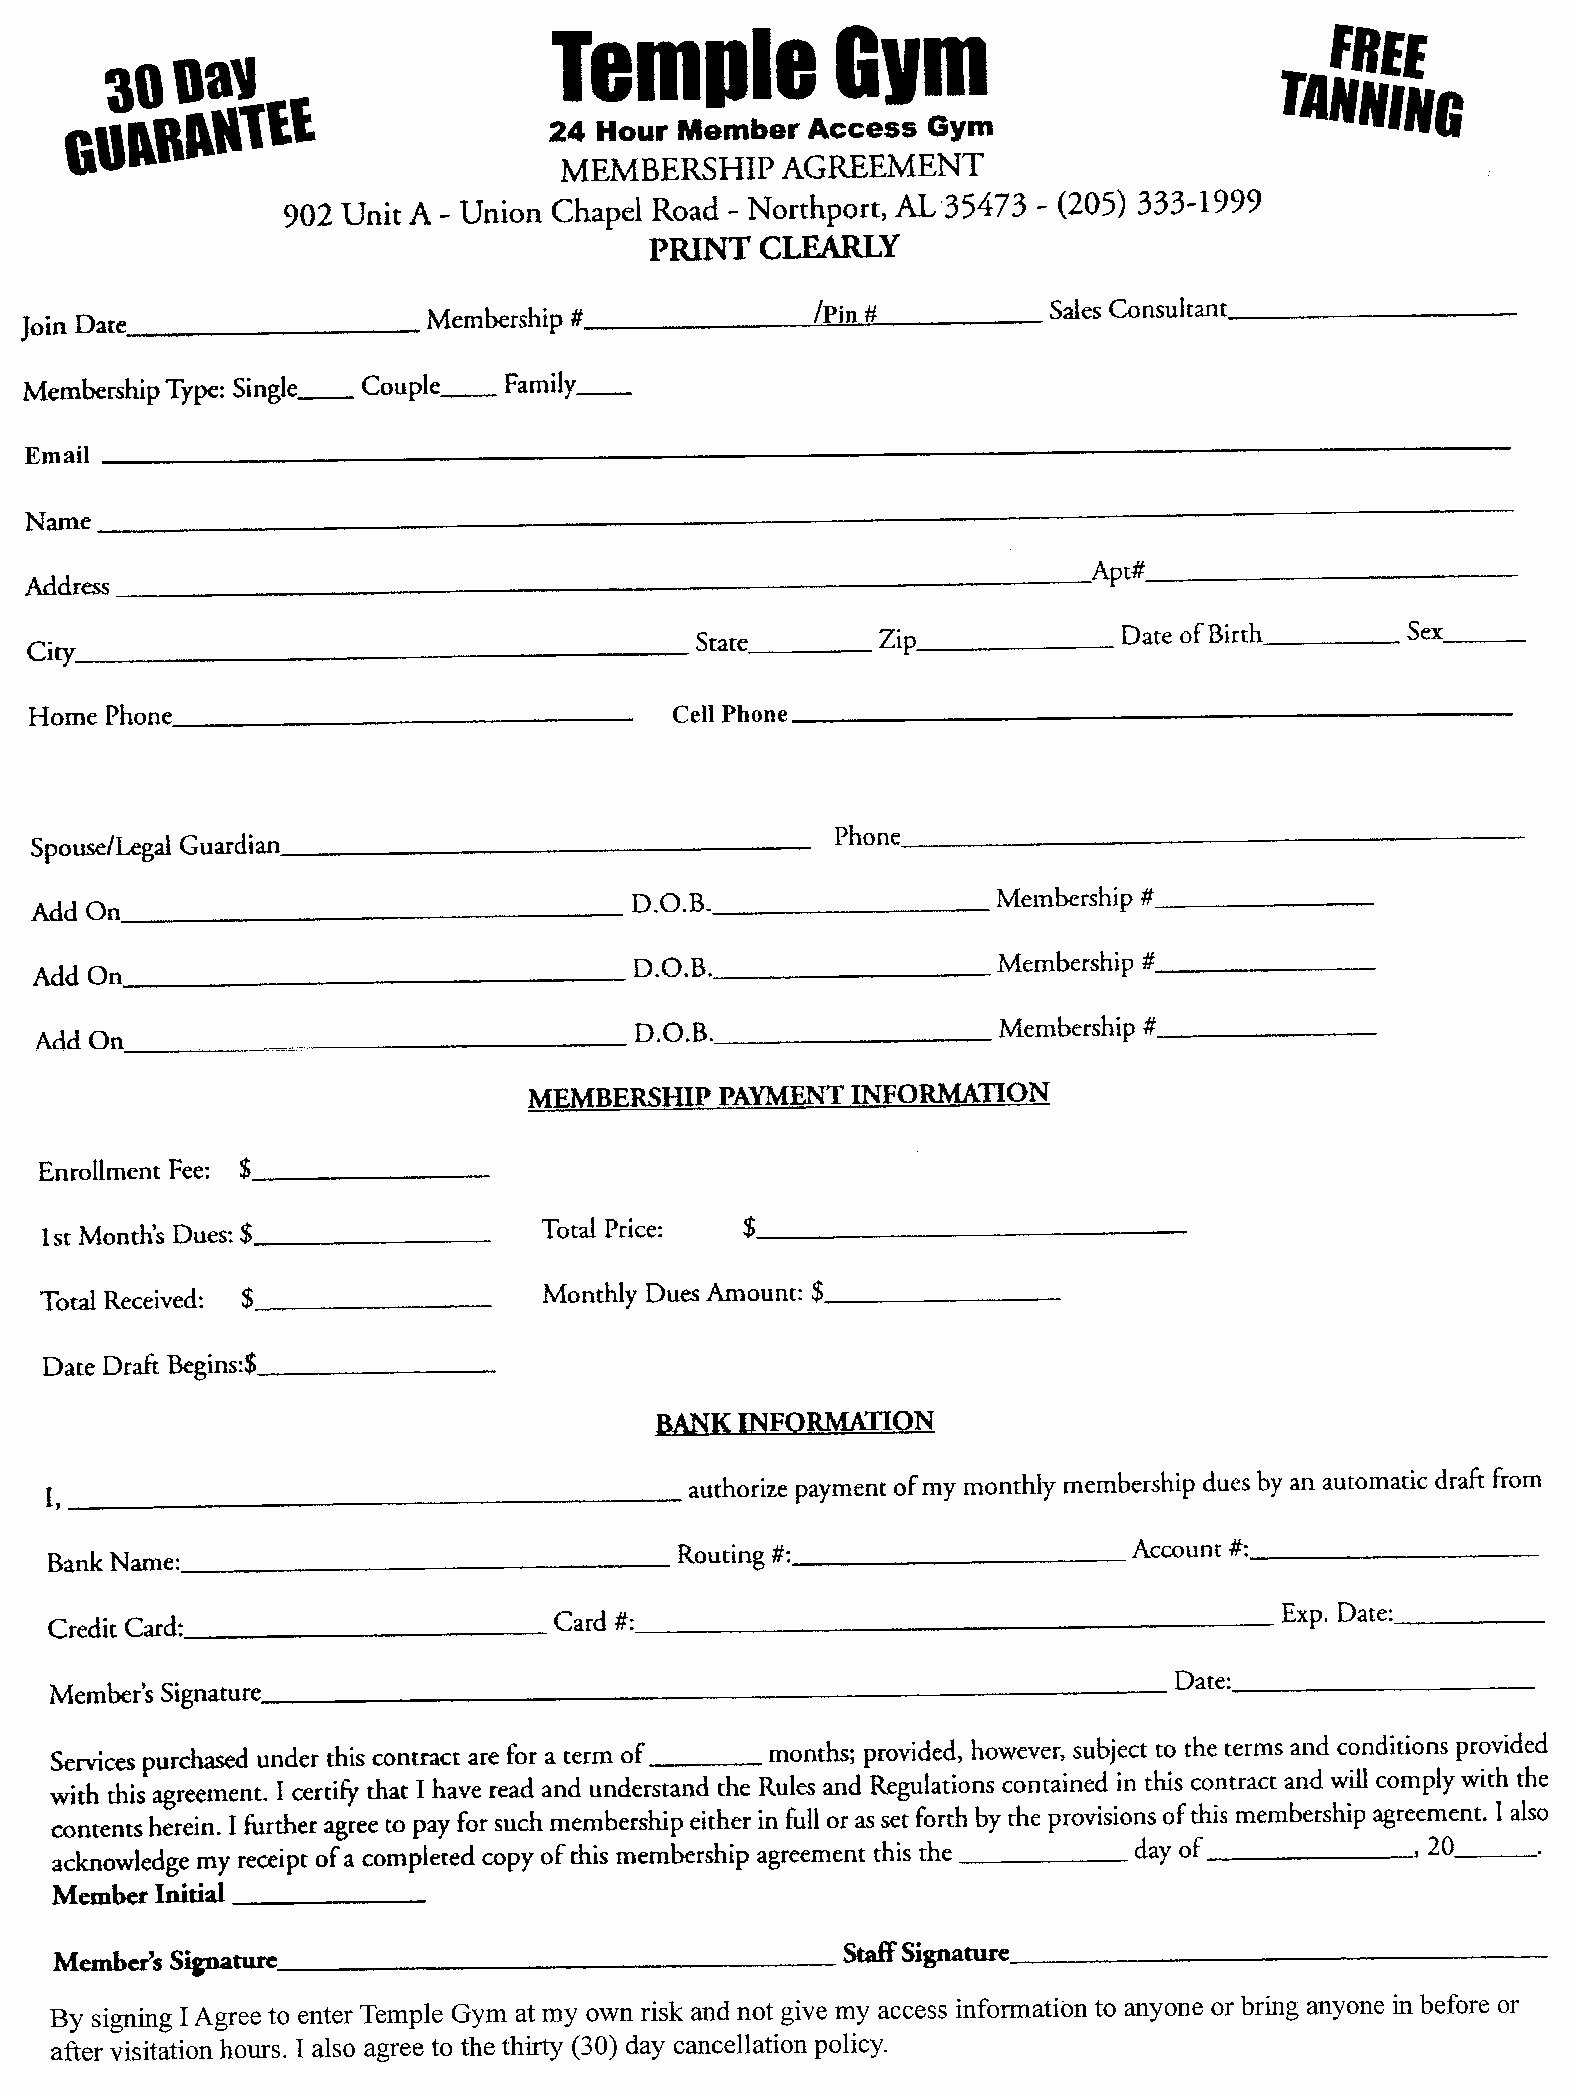 Free Fitness Center Legal Membership Waiver forms for Gyms and Fitness Centers